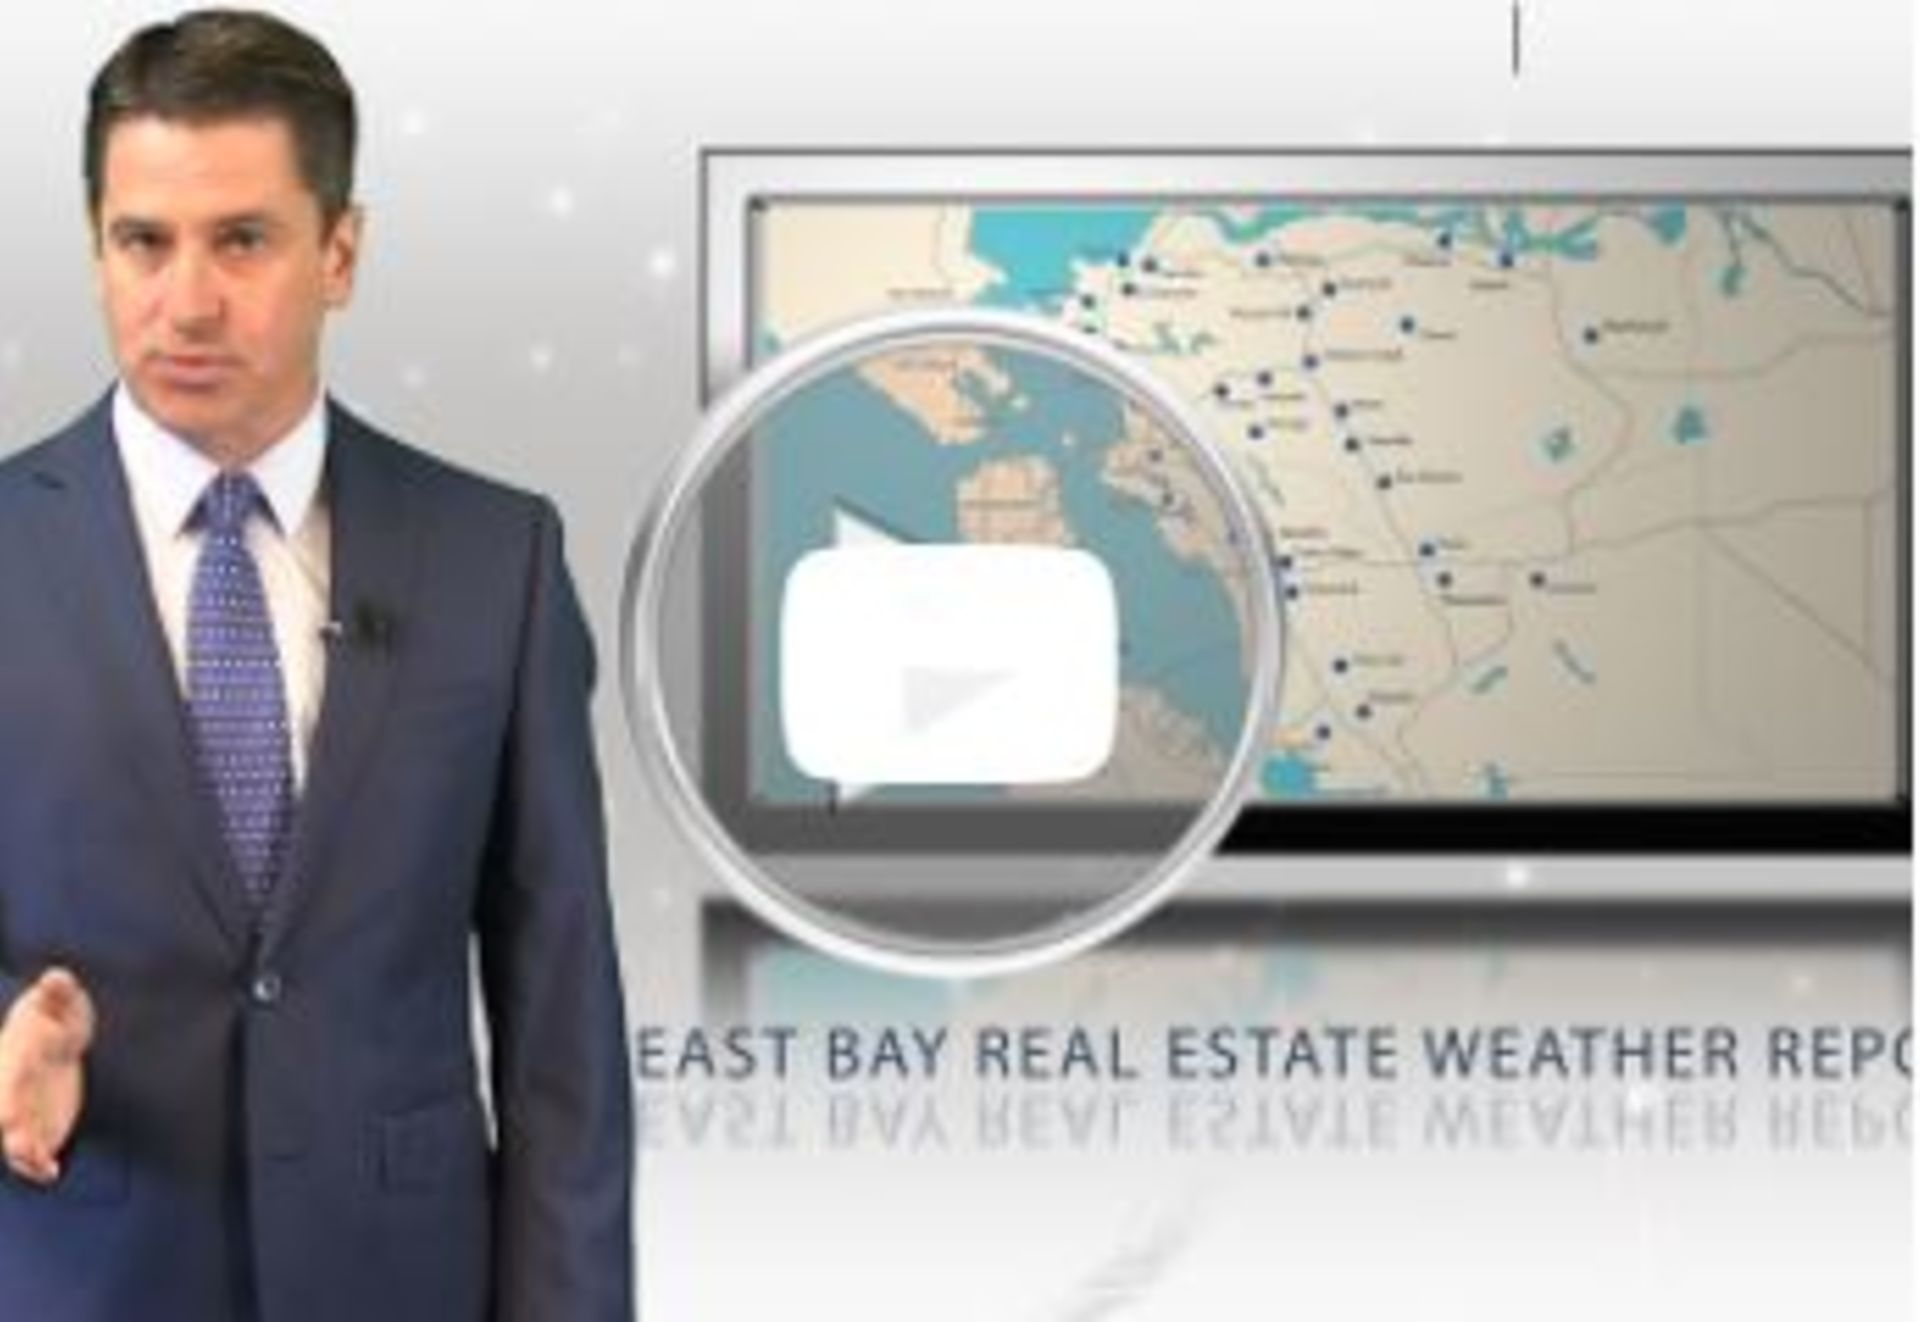 June 2017 East Bay Real Estate Weather Report